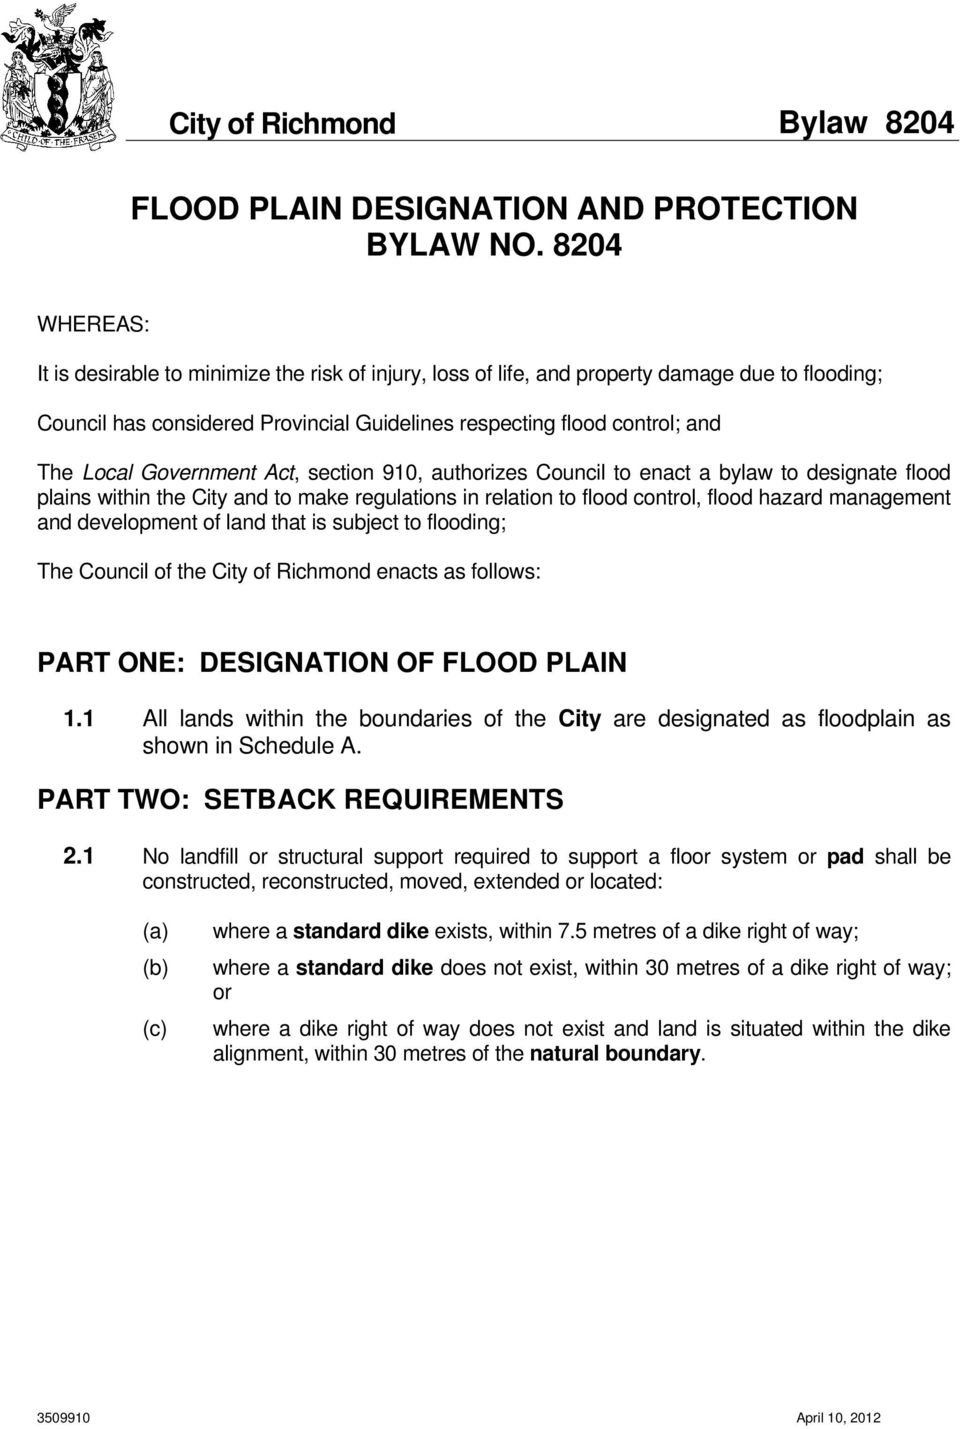 Government Act, section 910, authorizes Council to enact a bylaw to designate flood plains within the City and to make regulations in relation to flood control, flood hazard management and